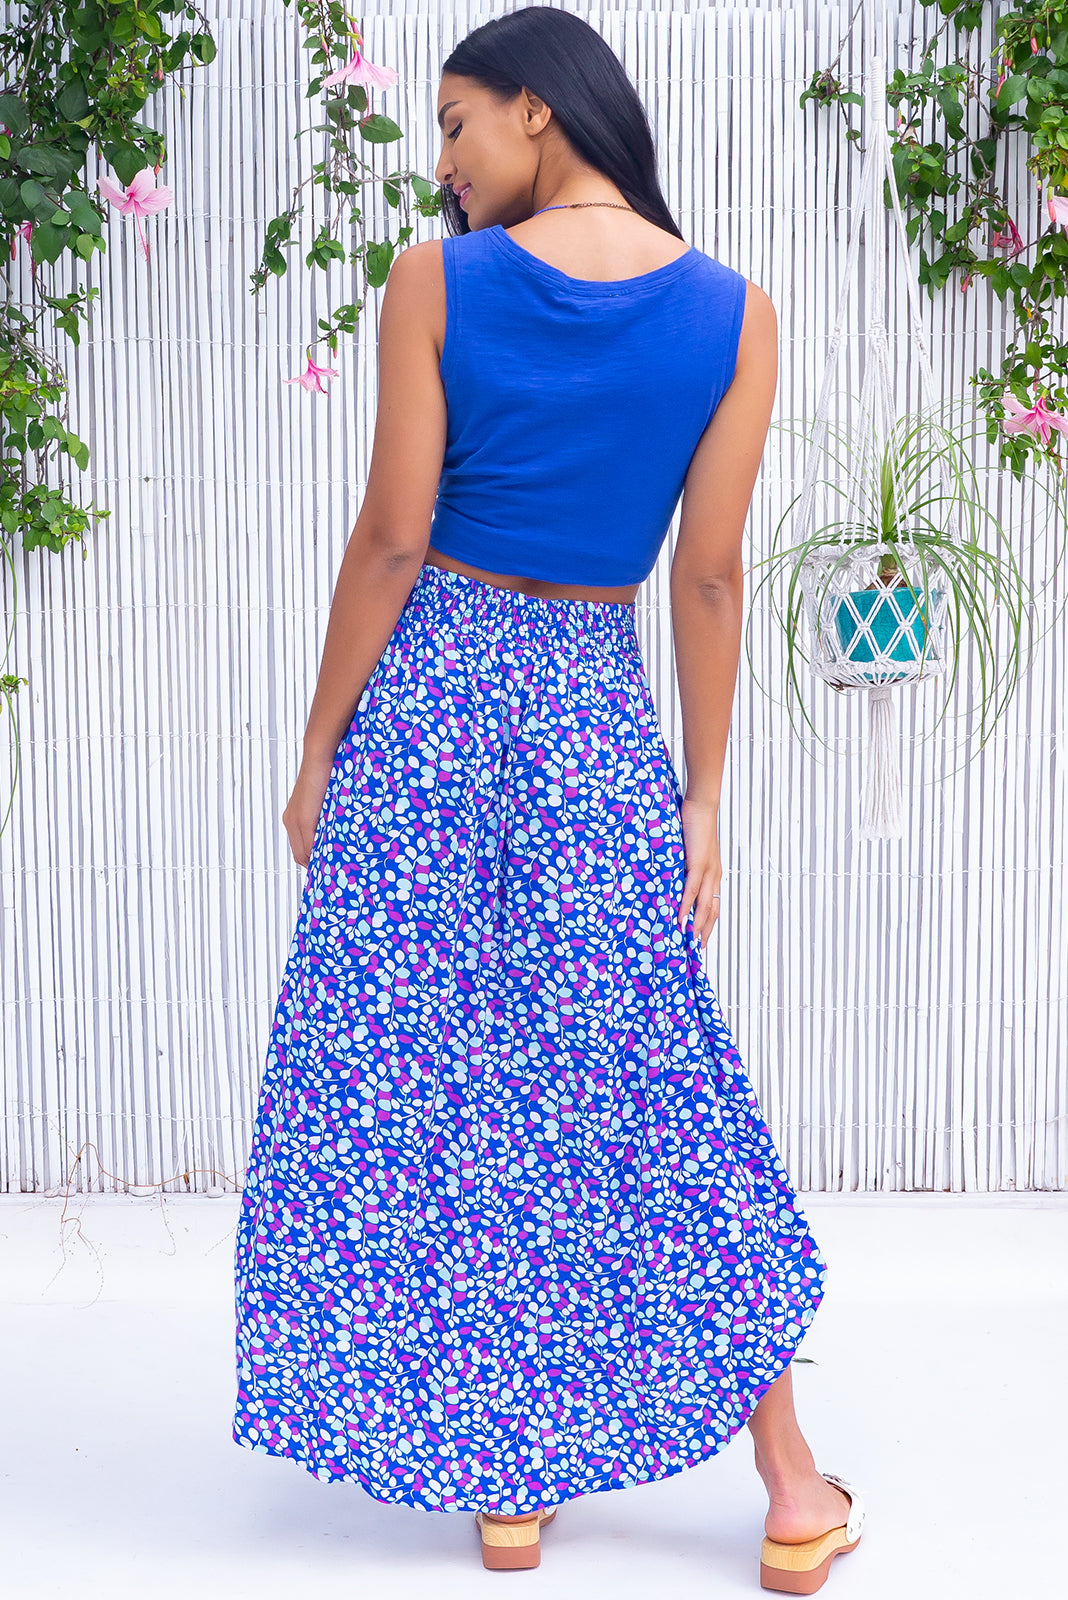 The Sails Capri Coast Maxi Skirt features scooped hemline, shorter at sides, V-shaped panelled waist band, elasticated back of waist, side pockets and 100% rayon in blue base with cool toned leaf print.